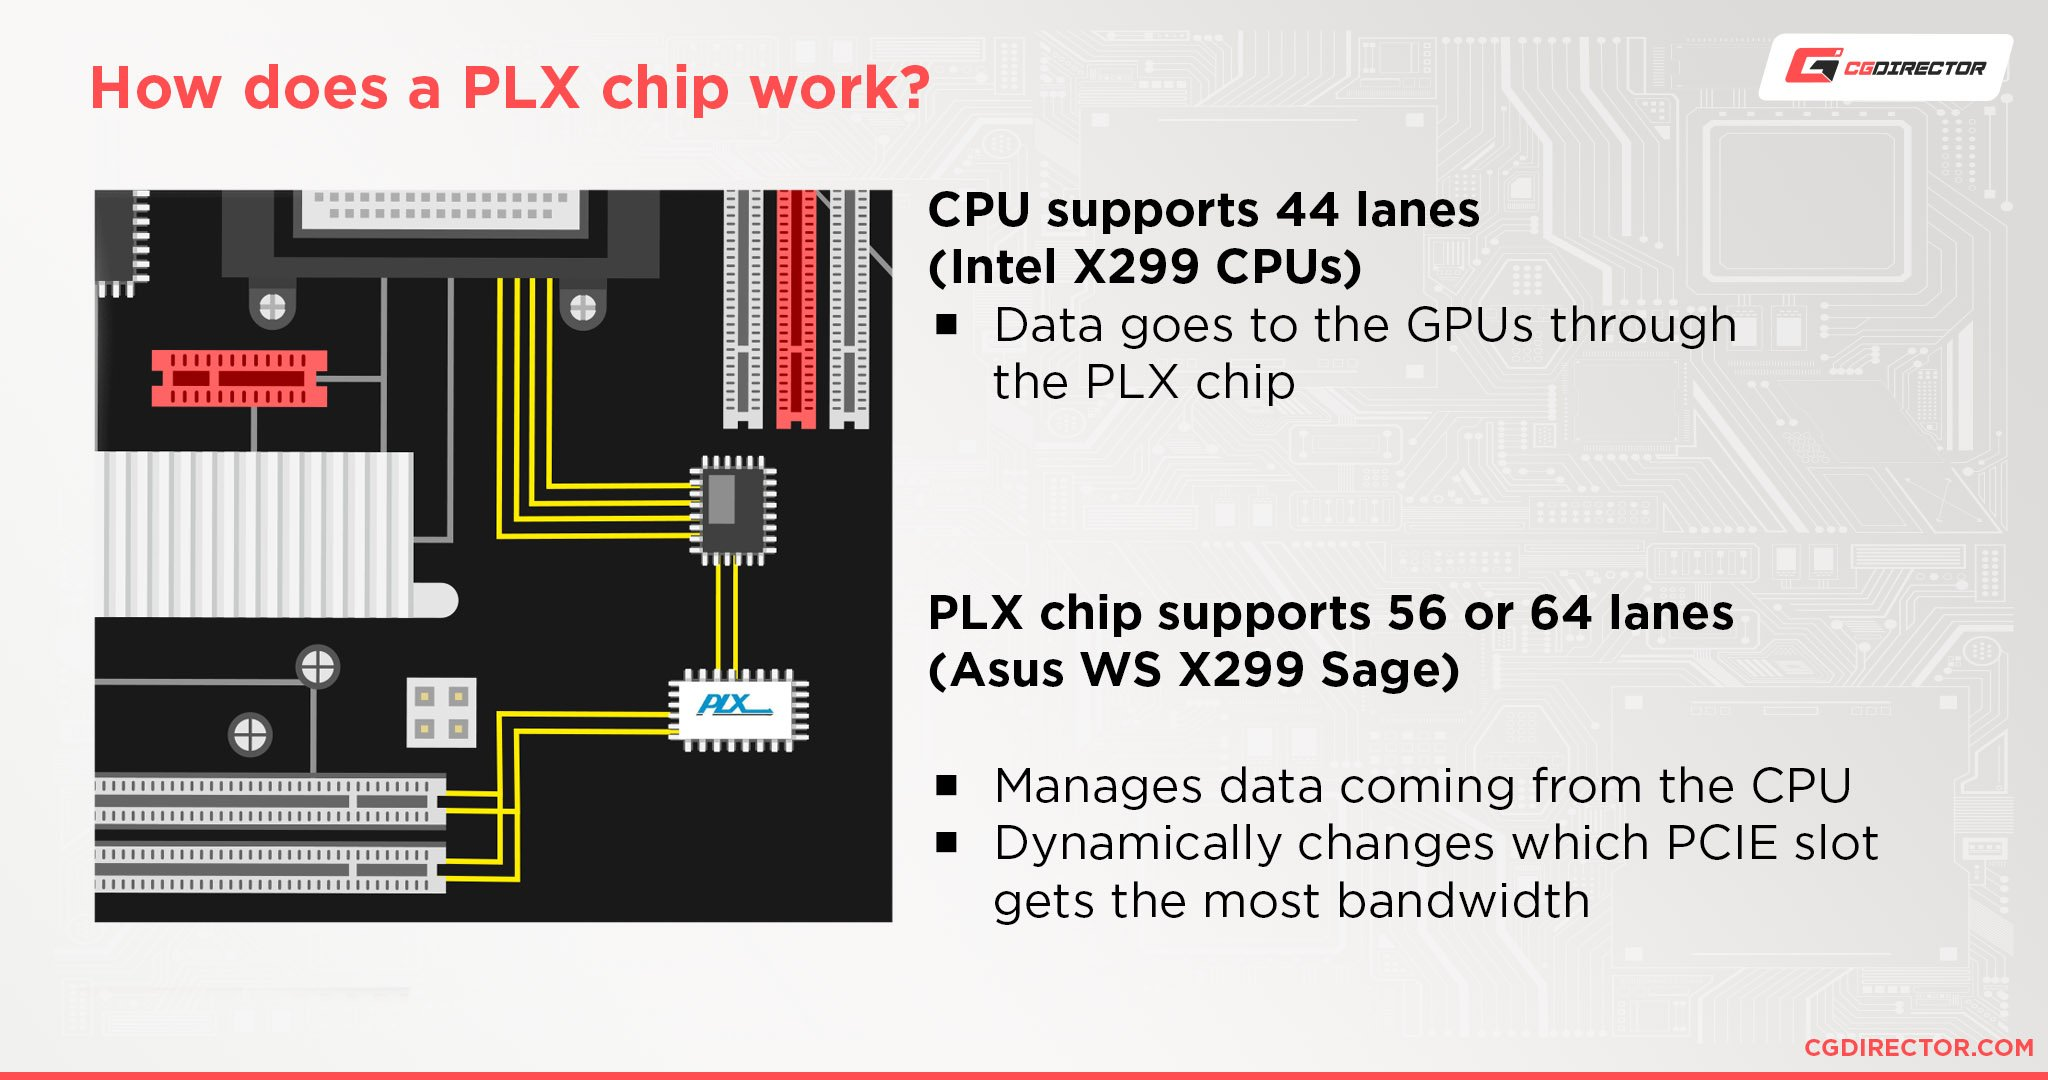 How does a PLX chip work